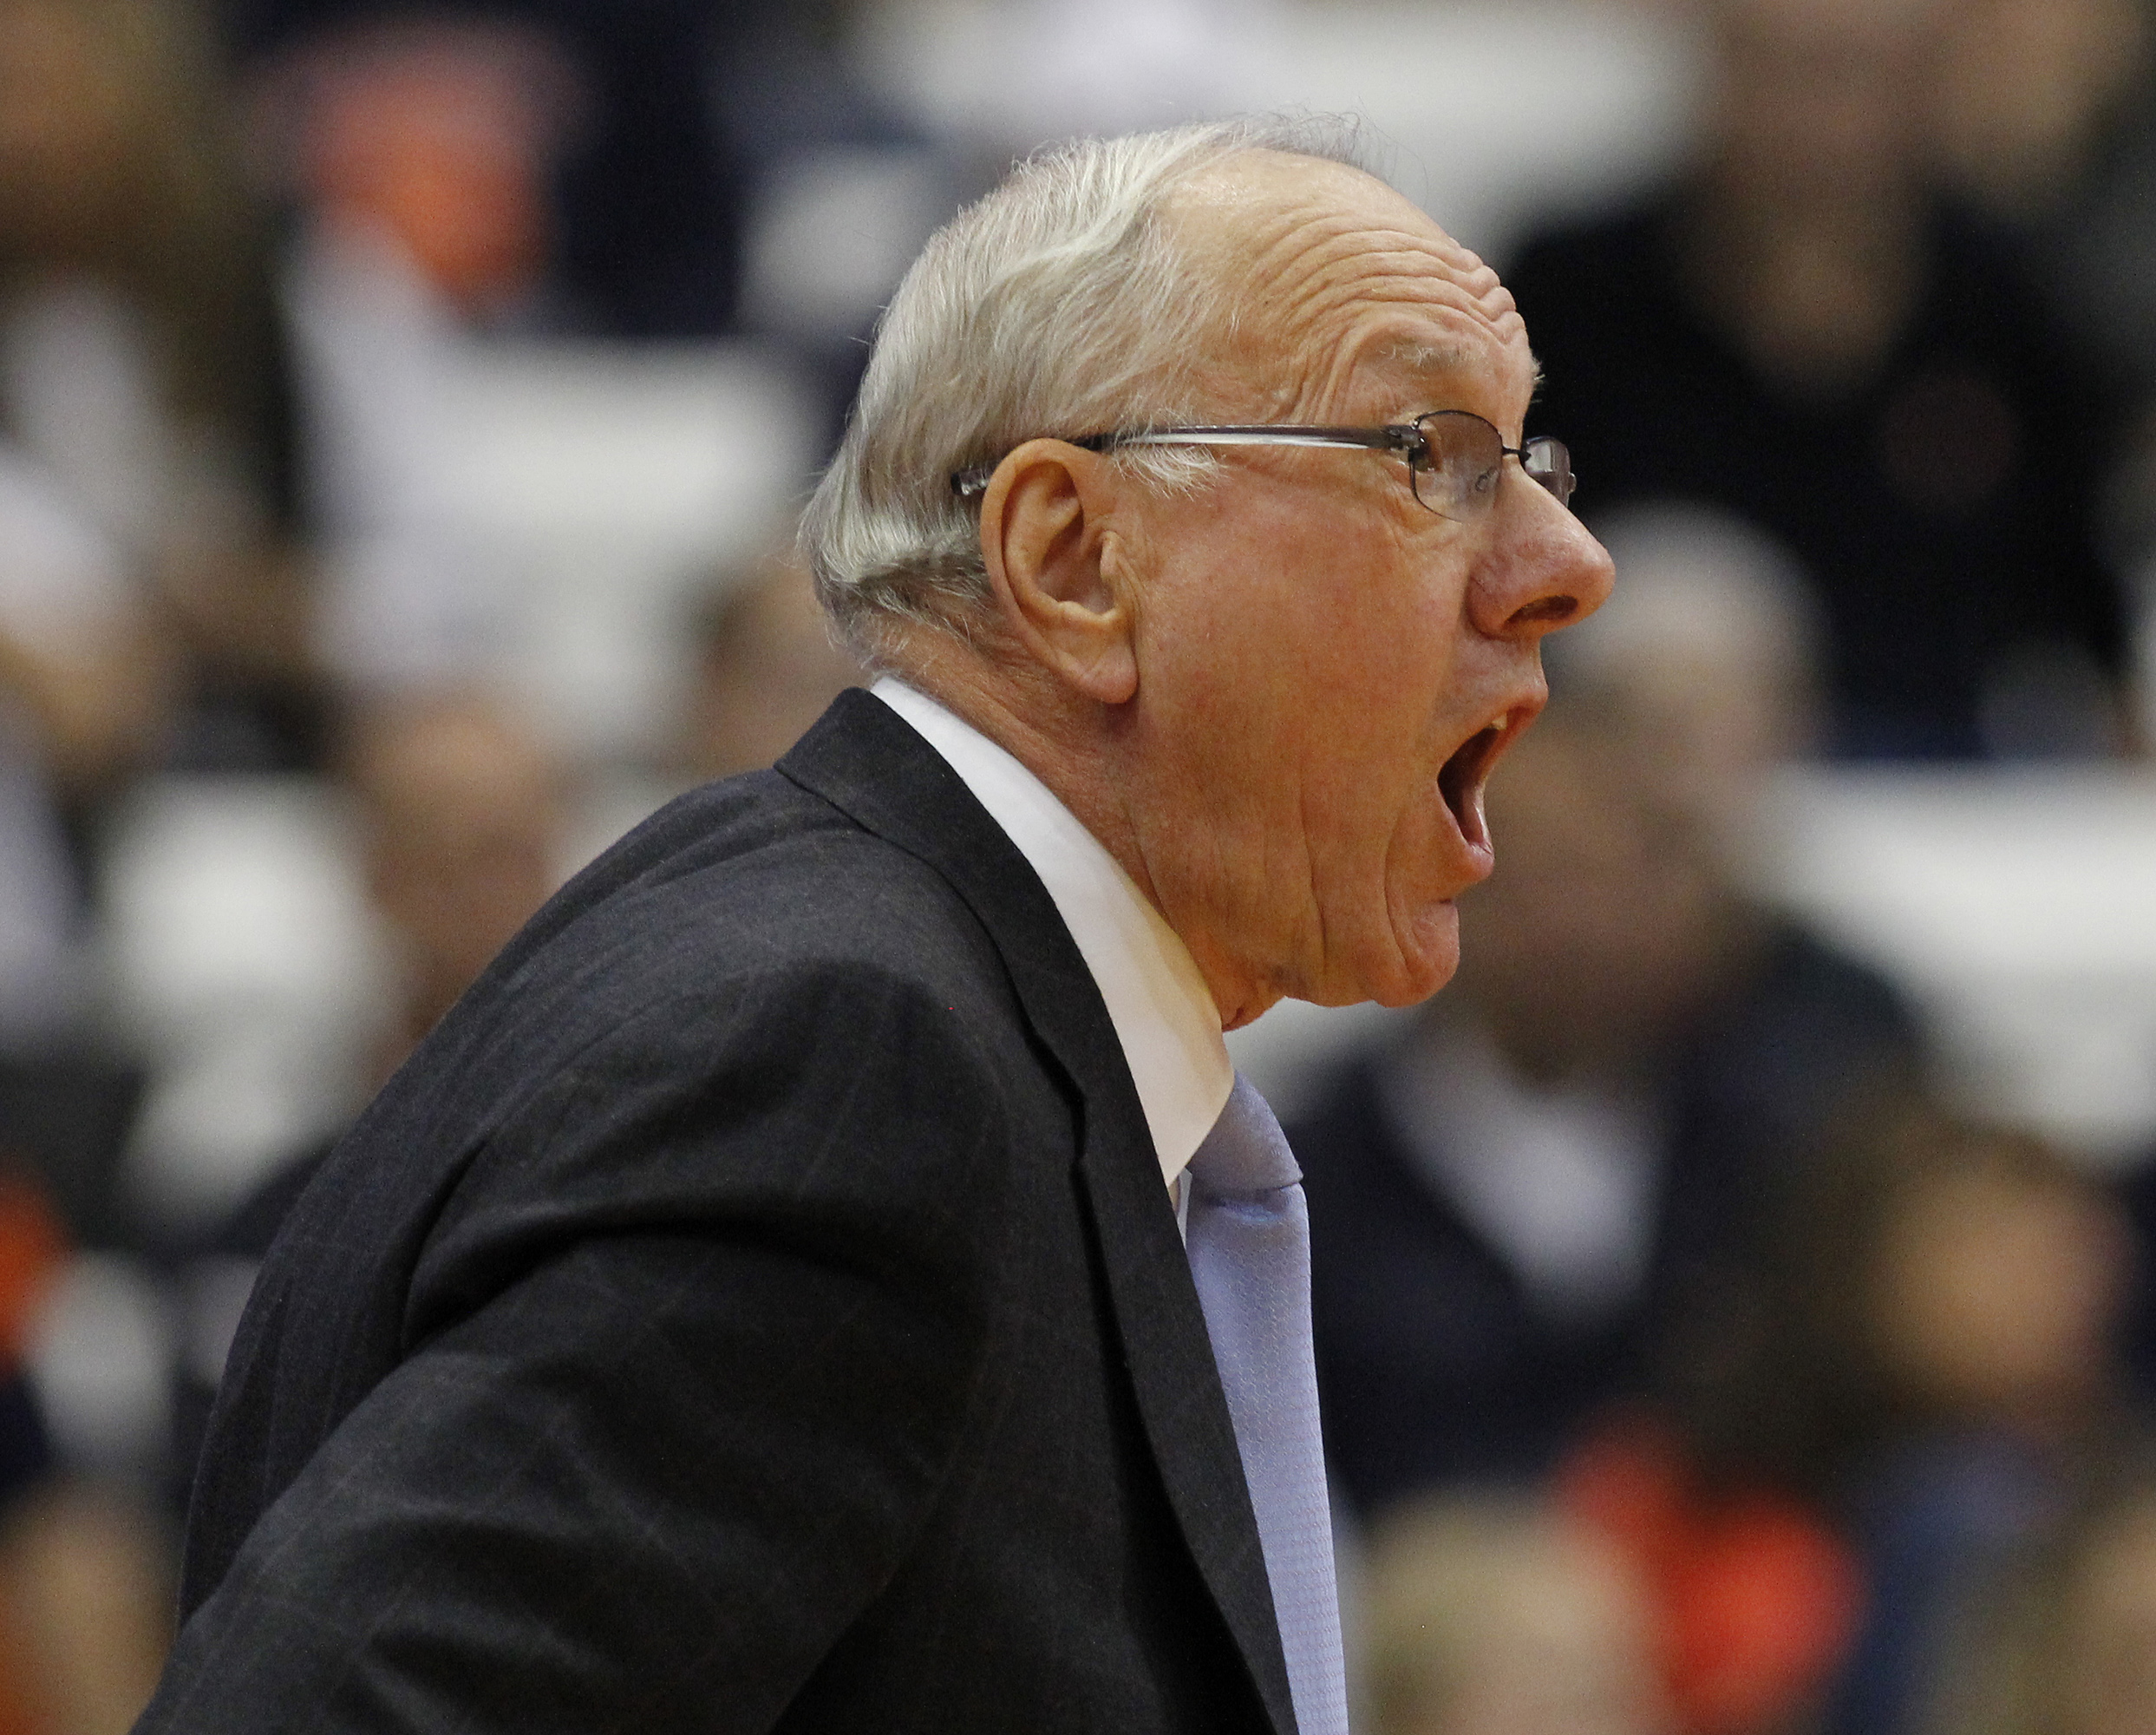 Syracuse head coach Jim Boeheim yells to his players in the first half of an NCAA college basketball game against Lehigh in Syracuse, N.Y., Friday, Nov. 13, 2015. (AP Photo/Nick Lisi)